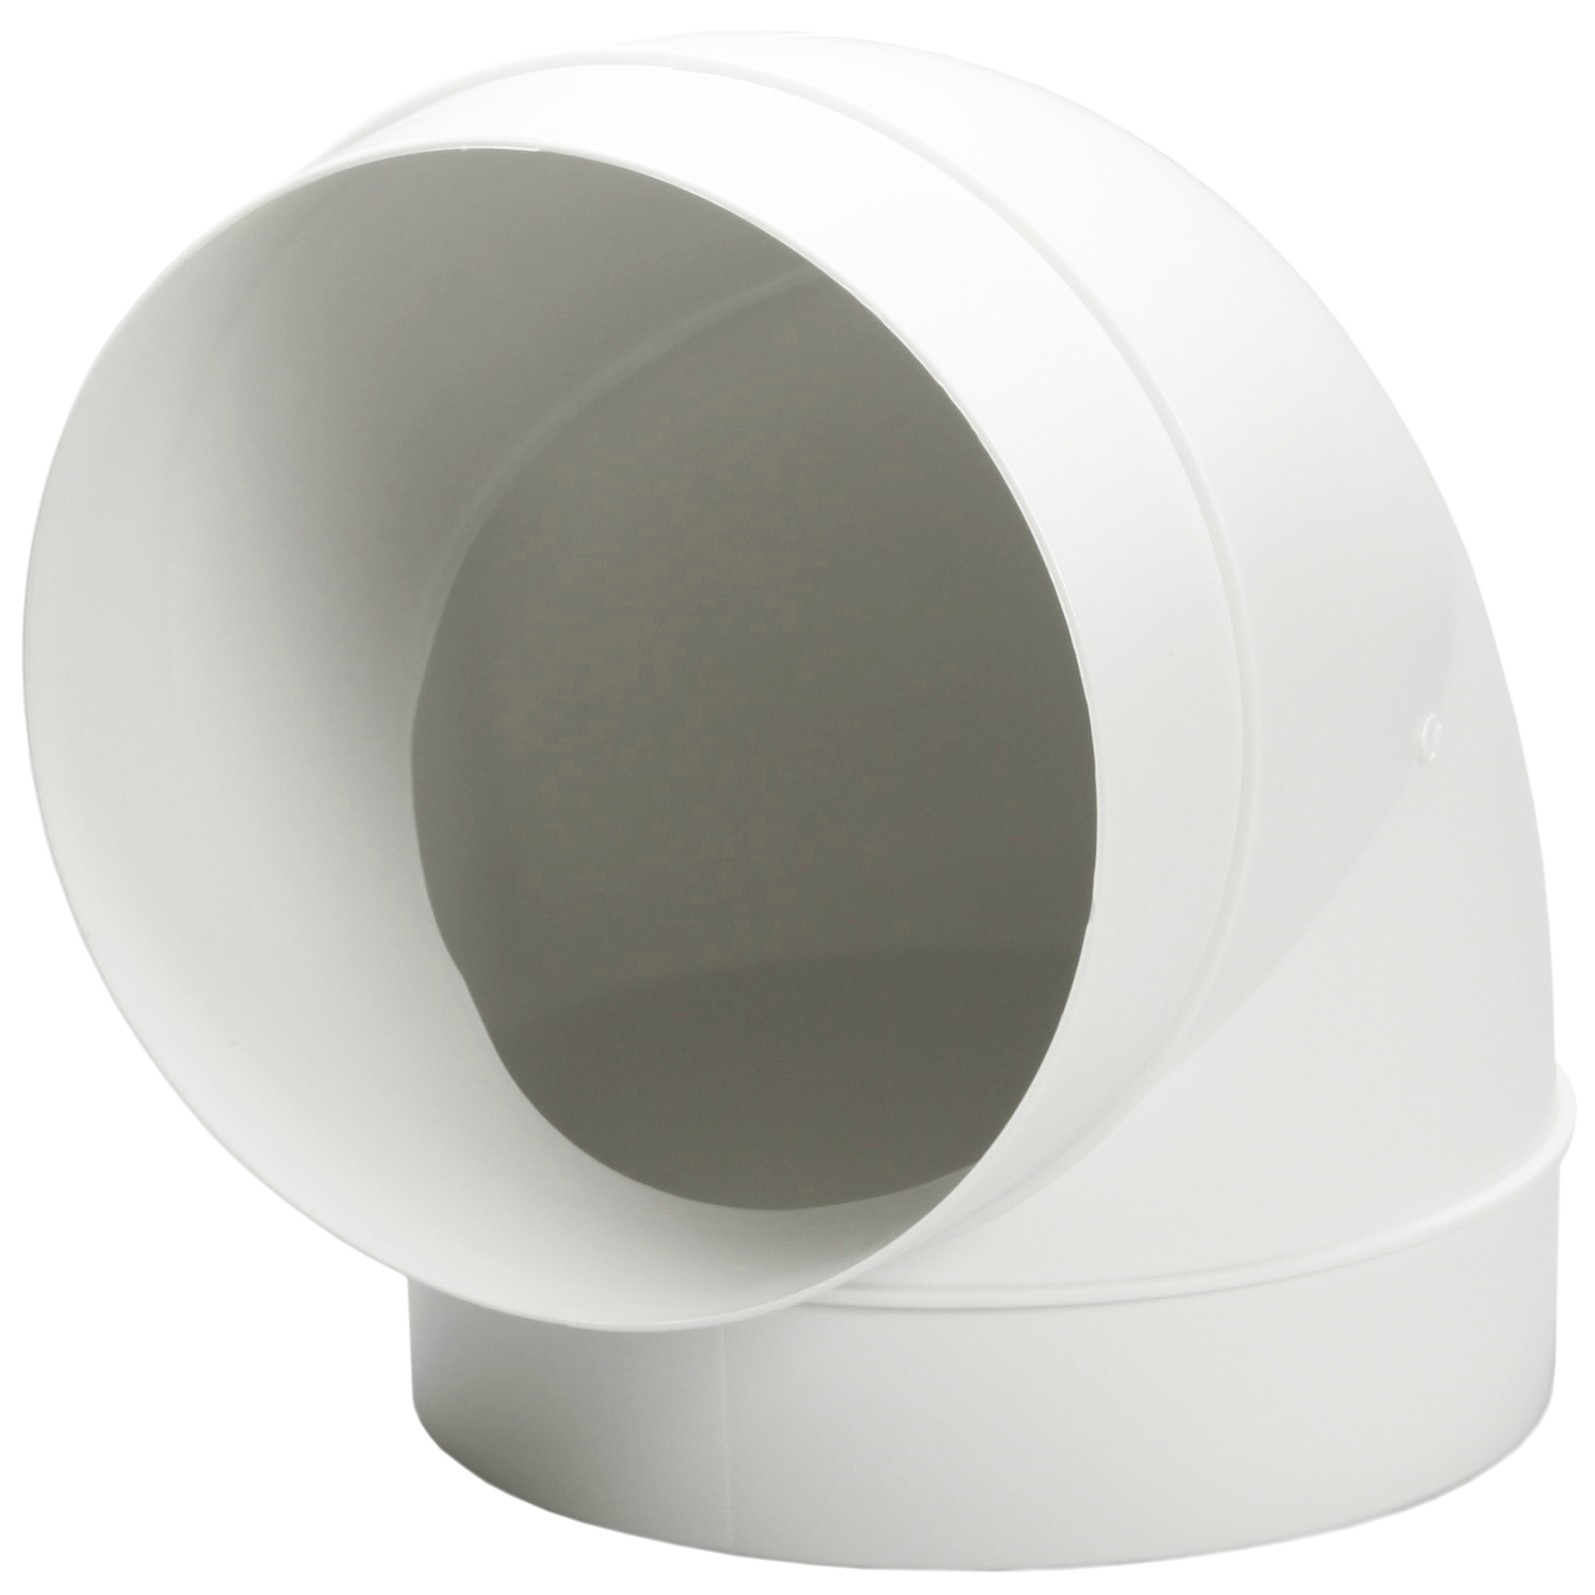 Manrose Round Ducting Pipe 90 Degree Bend - White, 120mm